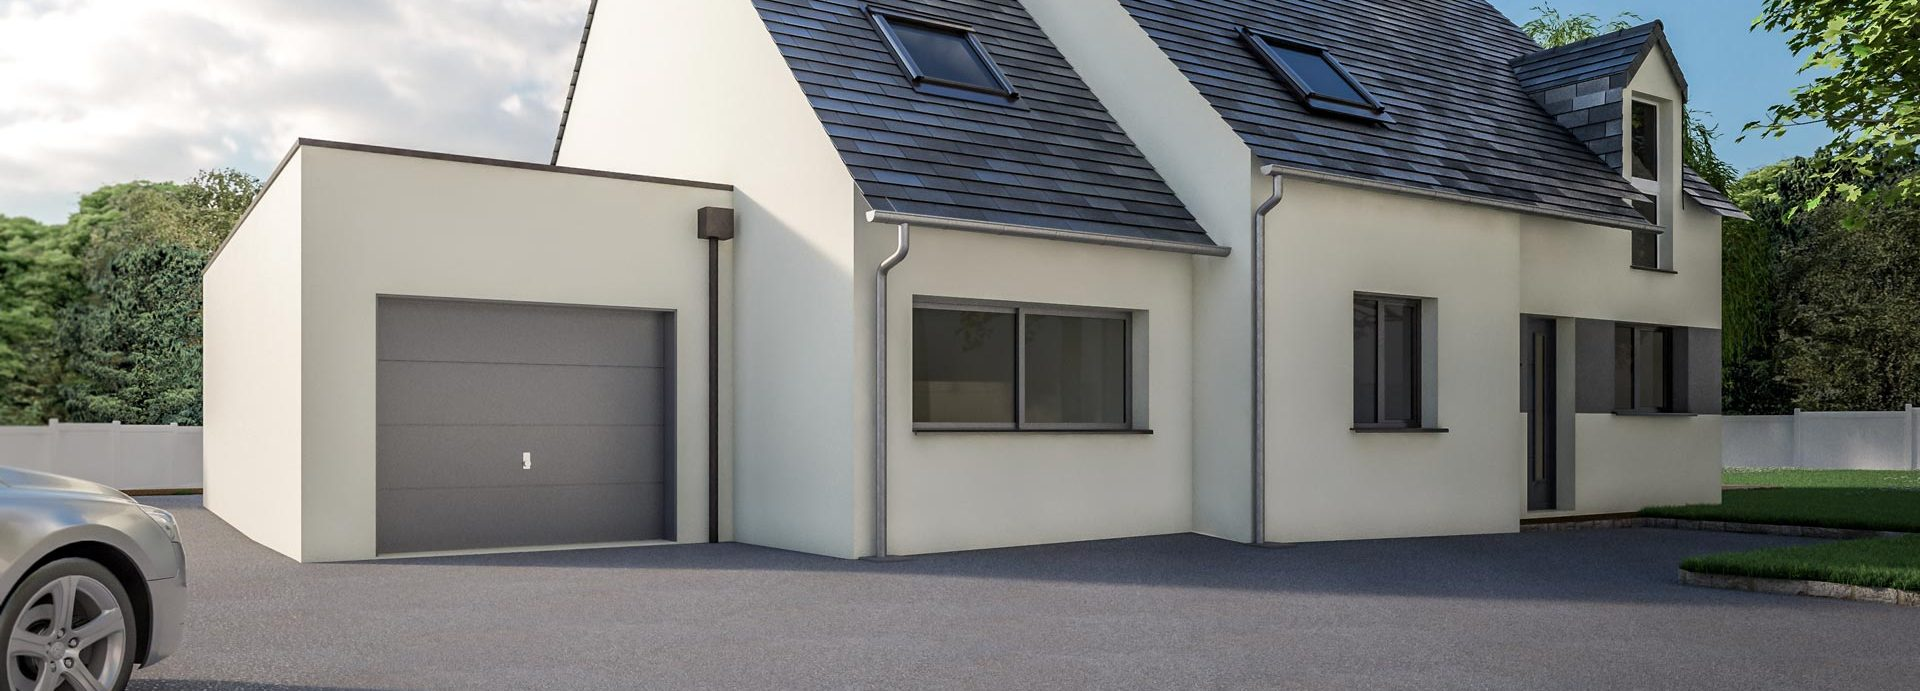 Une Extension De Garage Avec Toit Plat Cybel Extension - Extension garage toit plat